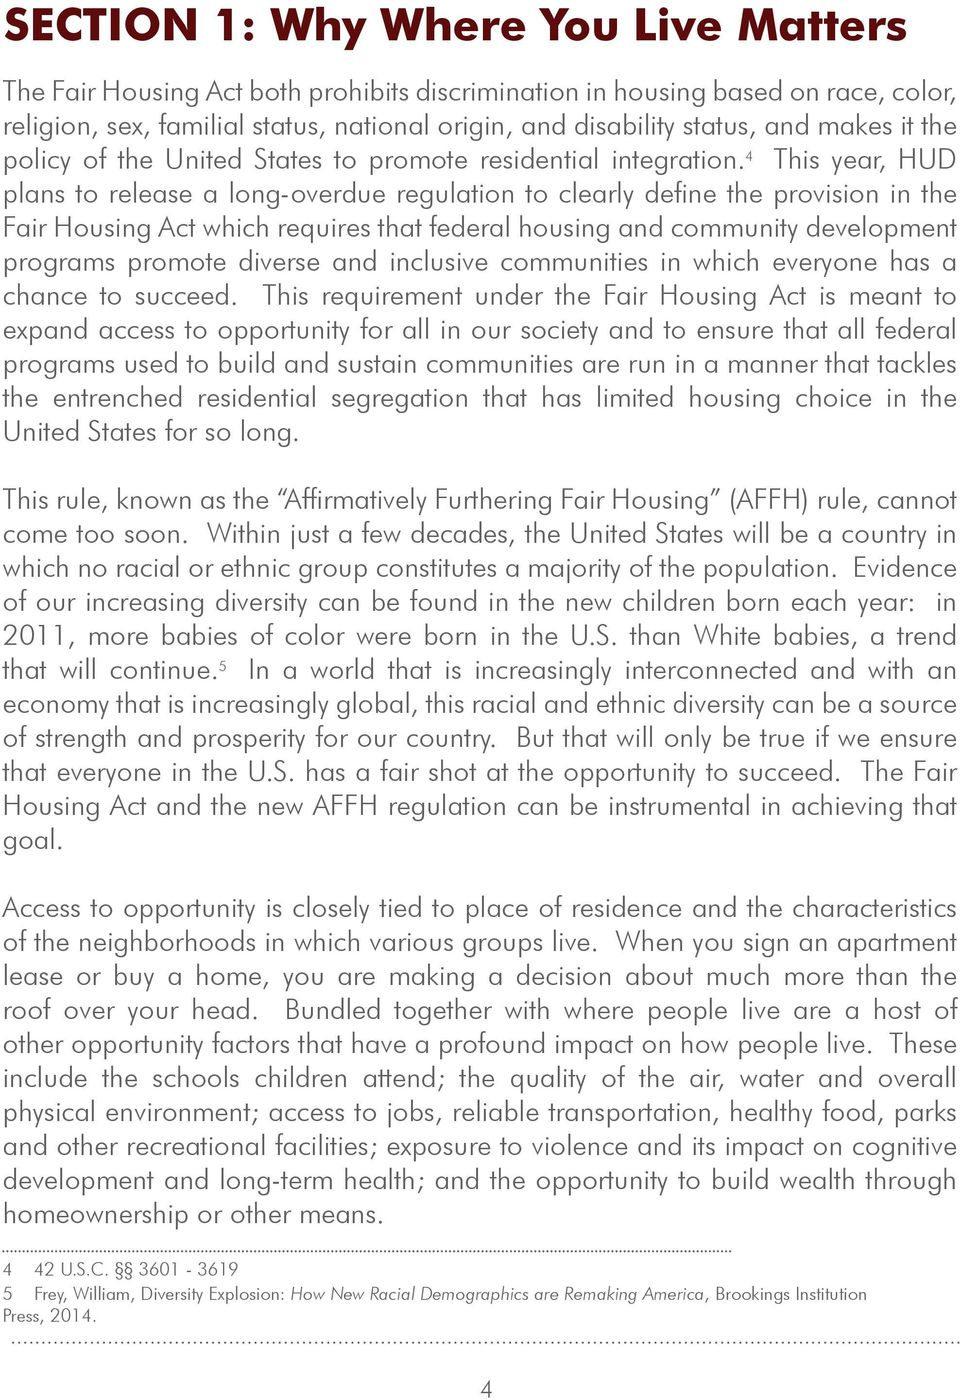 4 This year, HUD plans to release a long-overdue regulation to clearly define the provision in the Fair Housing Act which requires that federal housing and community development programs promote